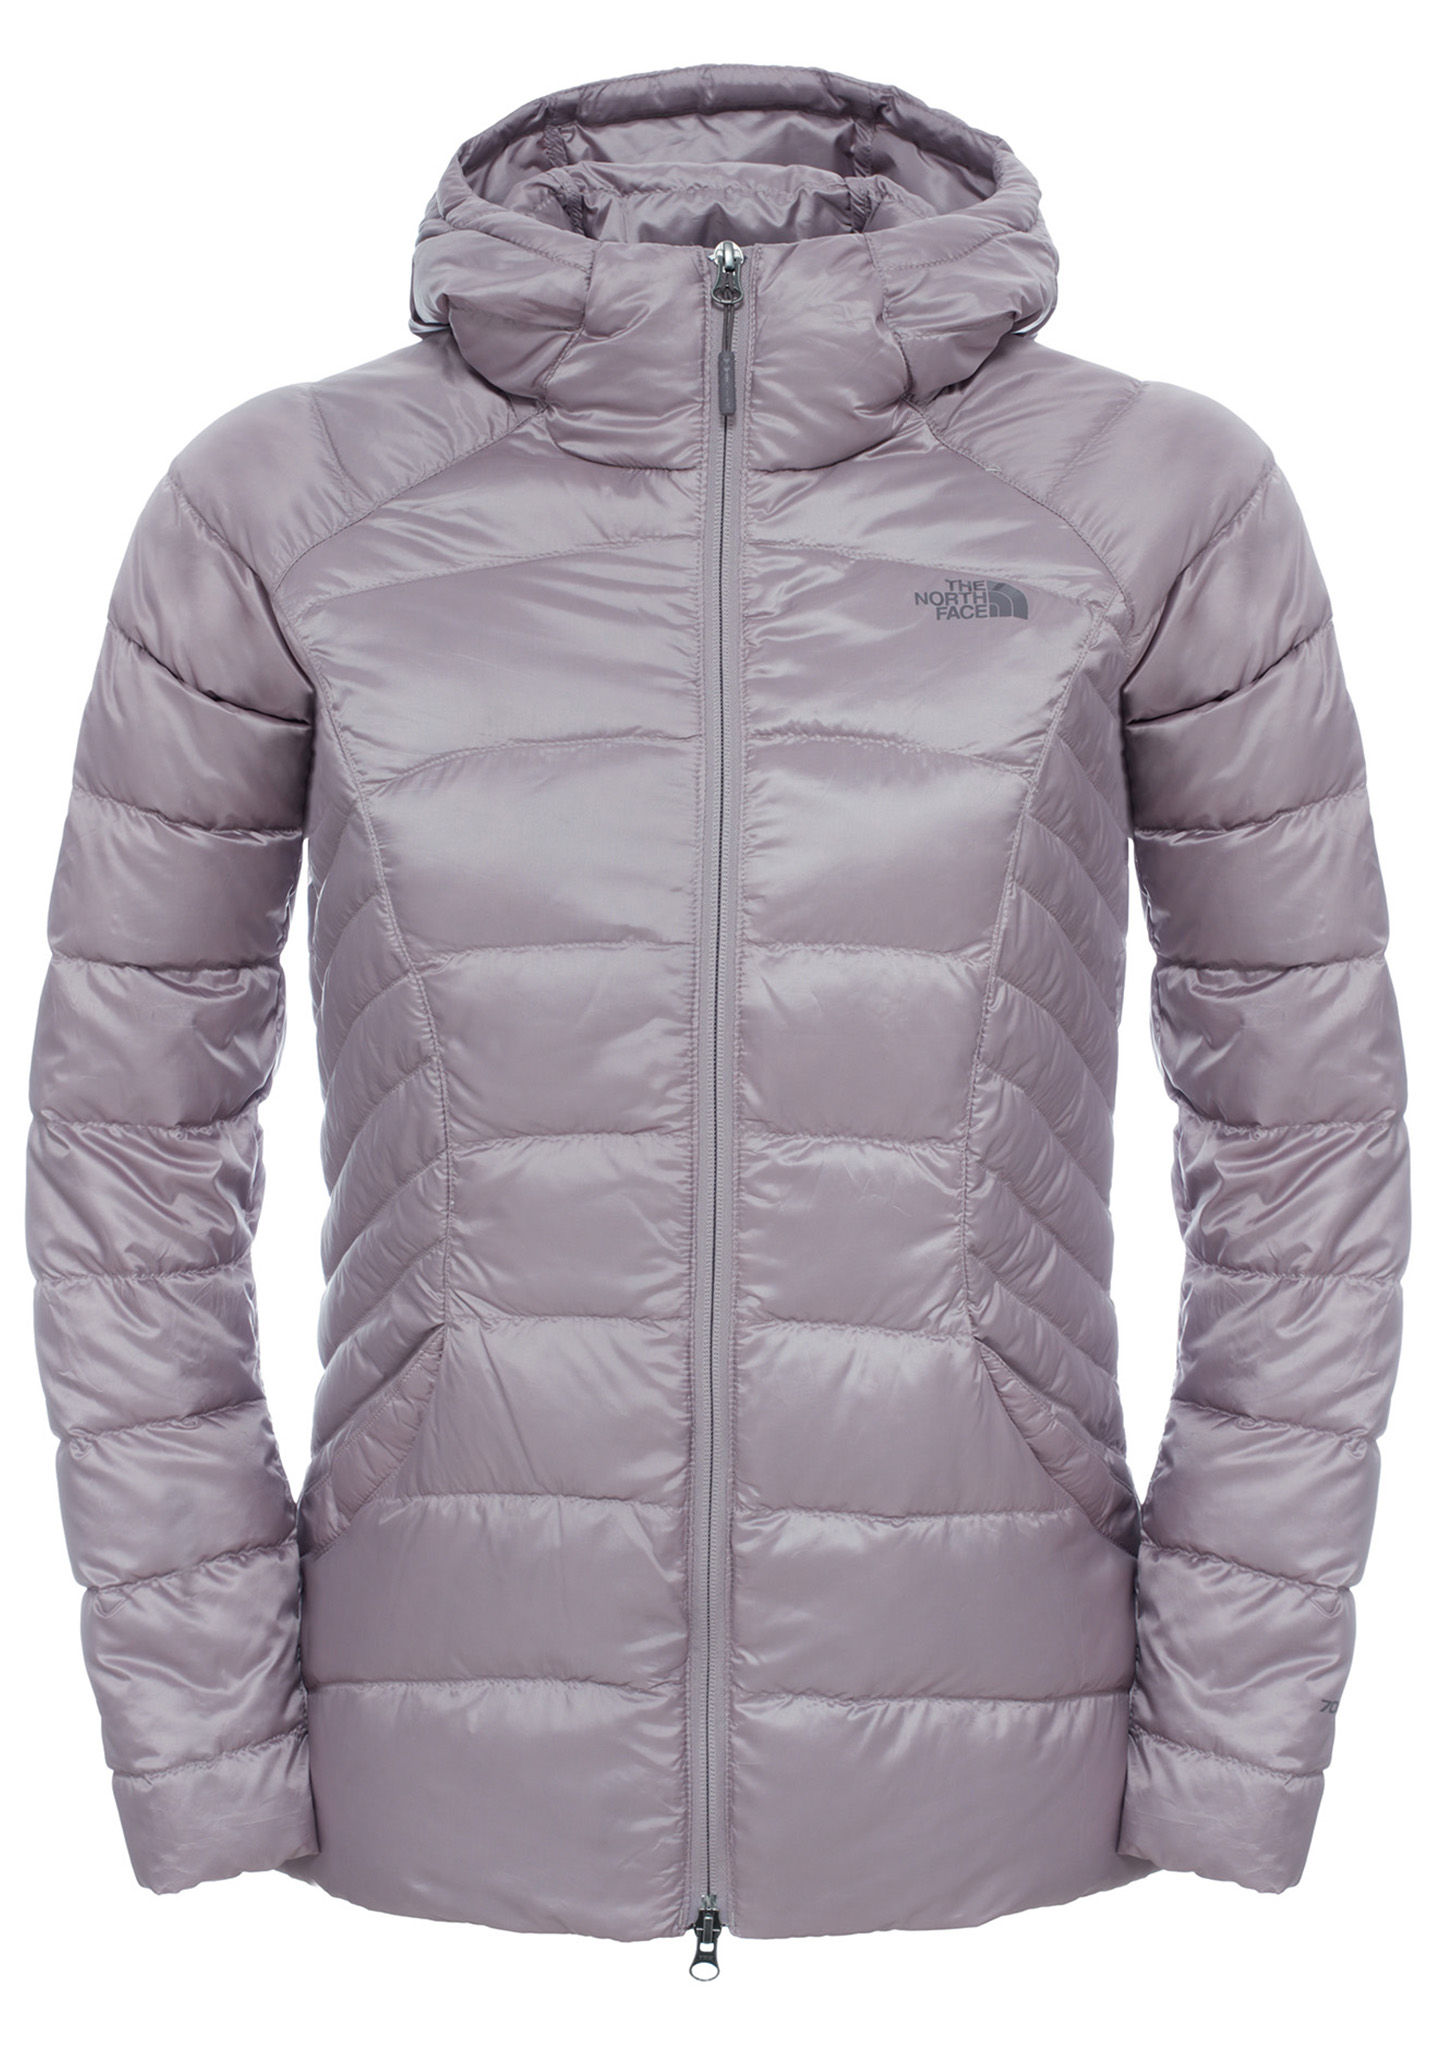 9171b8fe90b the-north-face-tonnerro-veste-fonctionnelle-femmes-gris.jpg